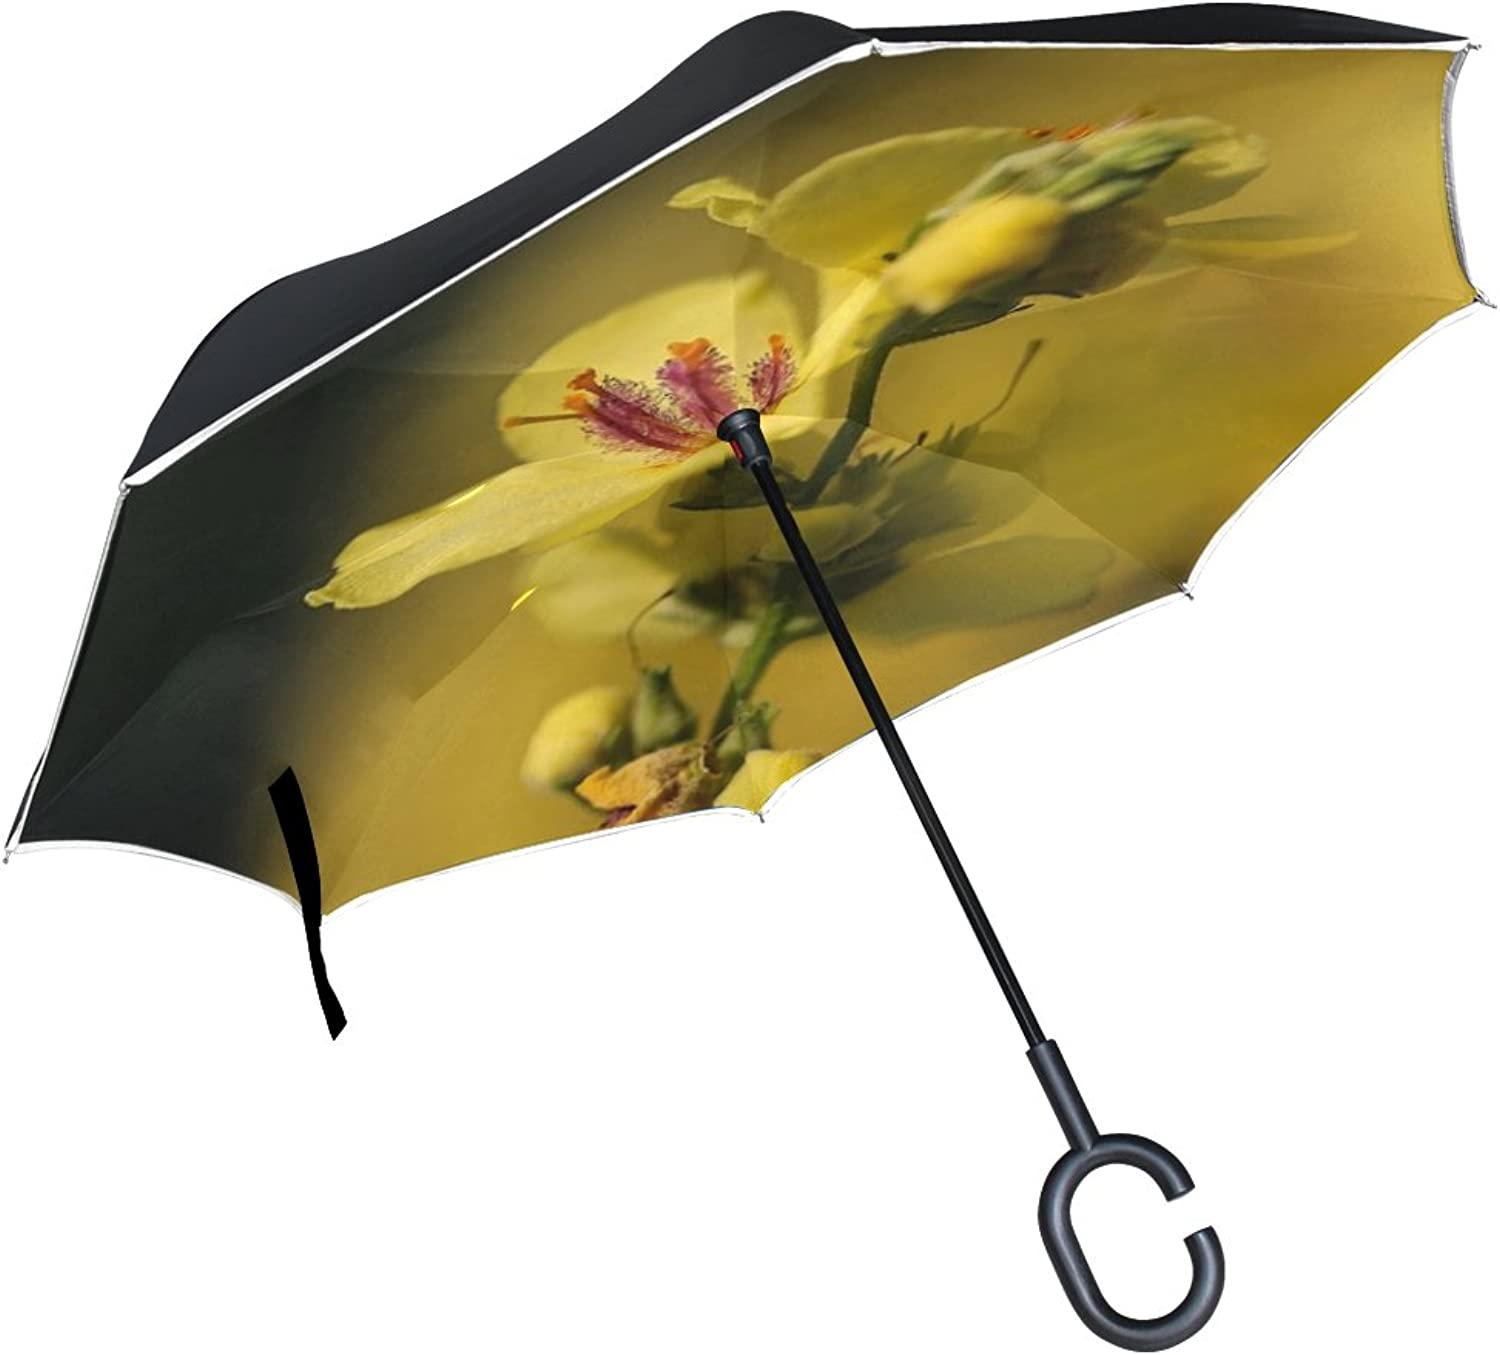 Double Layer Ingreened Flower Yellow Flower Mullein Meadow Nature Umbrellas Reverse Folding Umbrella Windproof Uv Predection Big Straight Umbrella for Car Rain Outdoor with CShaped Handle